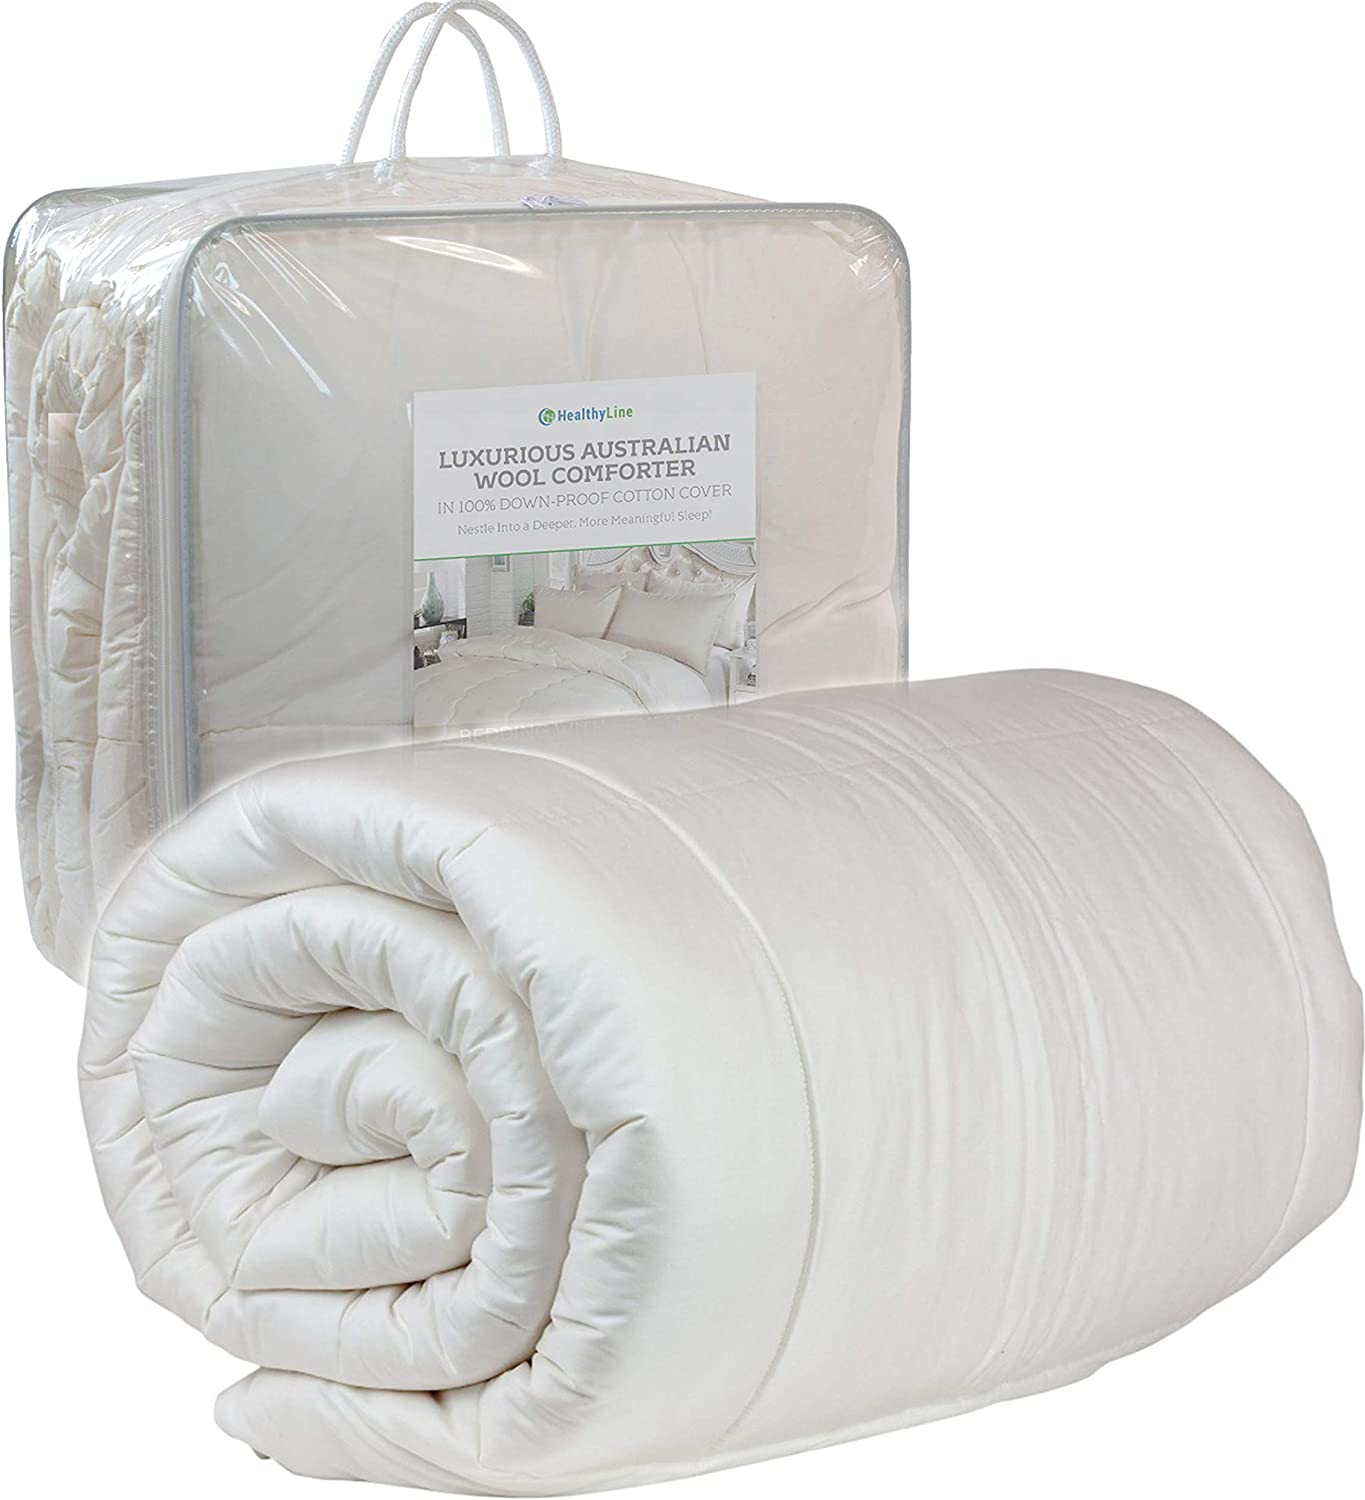 "HealthyLine Luxury Australian Wool Comforter - White Down Blanket - Cotton Shell 300 TC / 300 GSM - Queen Size / 89"" x 89"""